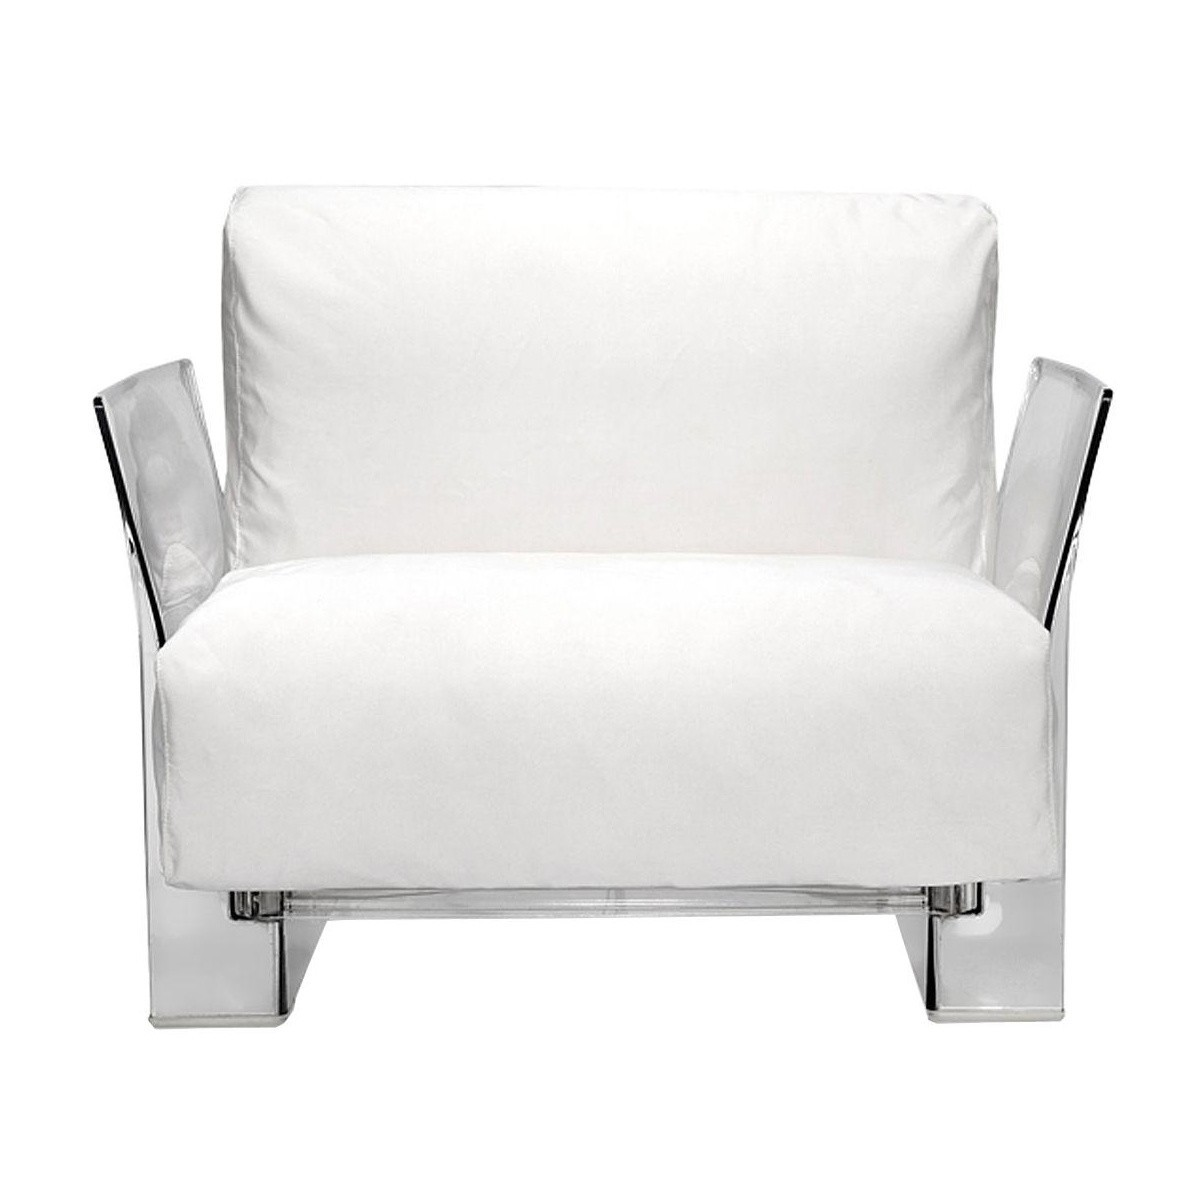 Kartell Sofa Pop Outdoor Chair